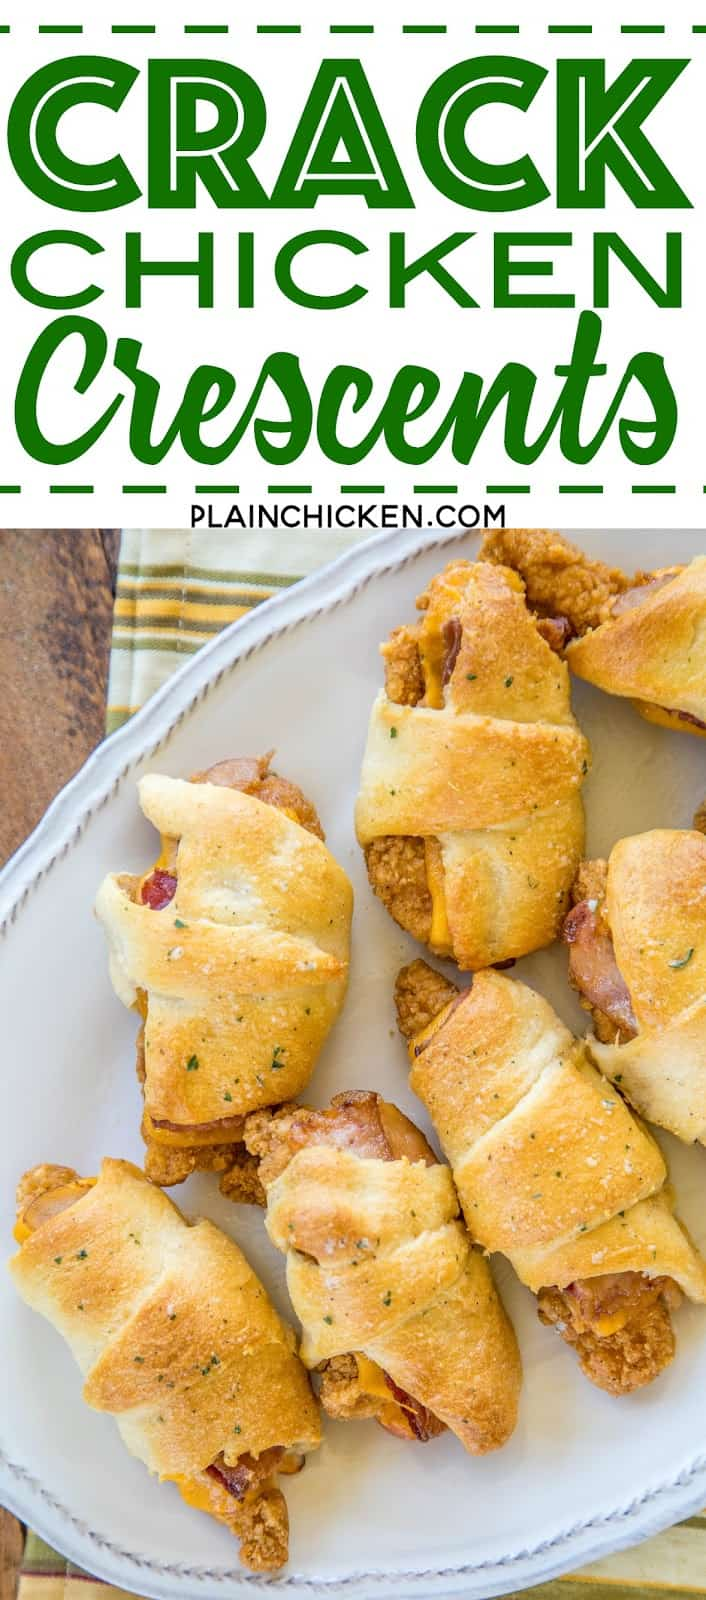 Crack Chicken Crescents - frozen chicken tenders, cheddar cheese, bacon and ranch dressing wrapped in refrigerated crescent rolls and baked. CRAZY good!!! Everyone cleaned their plate and went back for seconds! A HUGE hit with the entire family! Great for a quick lunch, dinner or tailgating! No prep work and ready to eat in under 30 minutes! YUM! #quick #easy #weeknightmeal